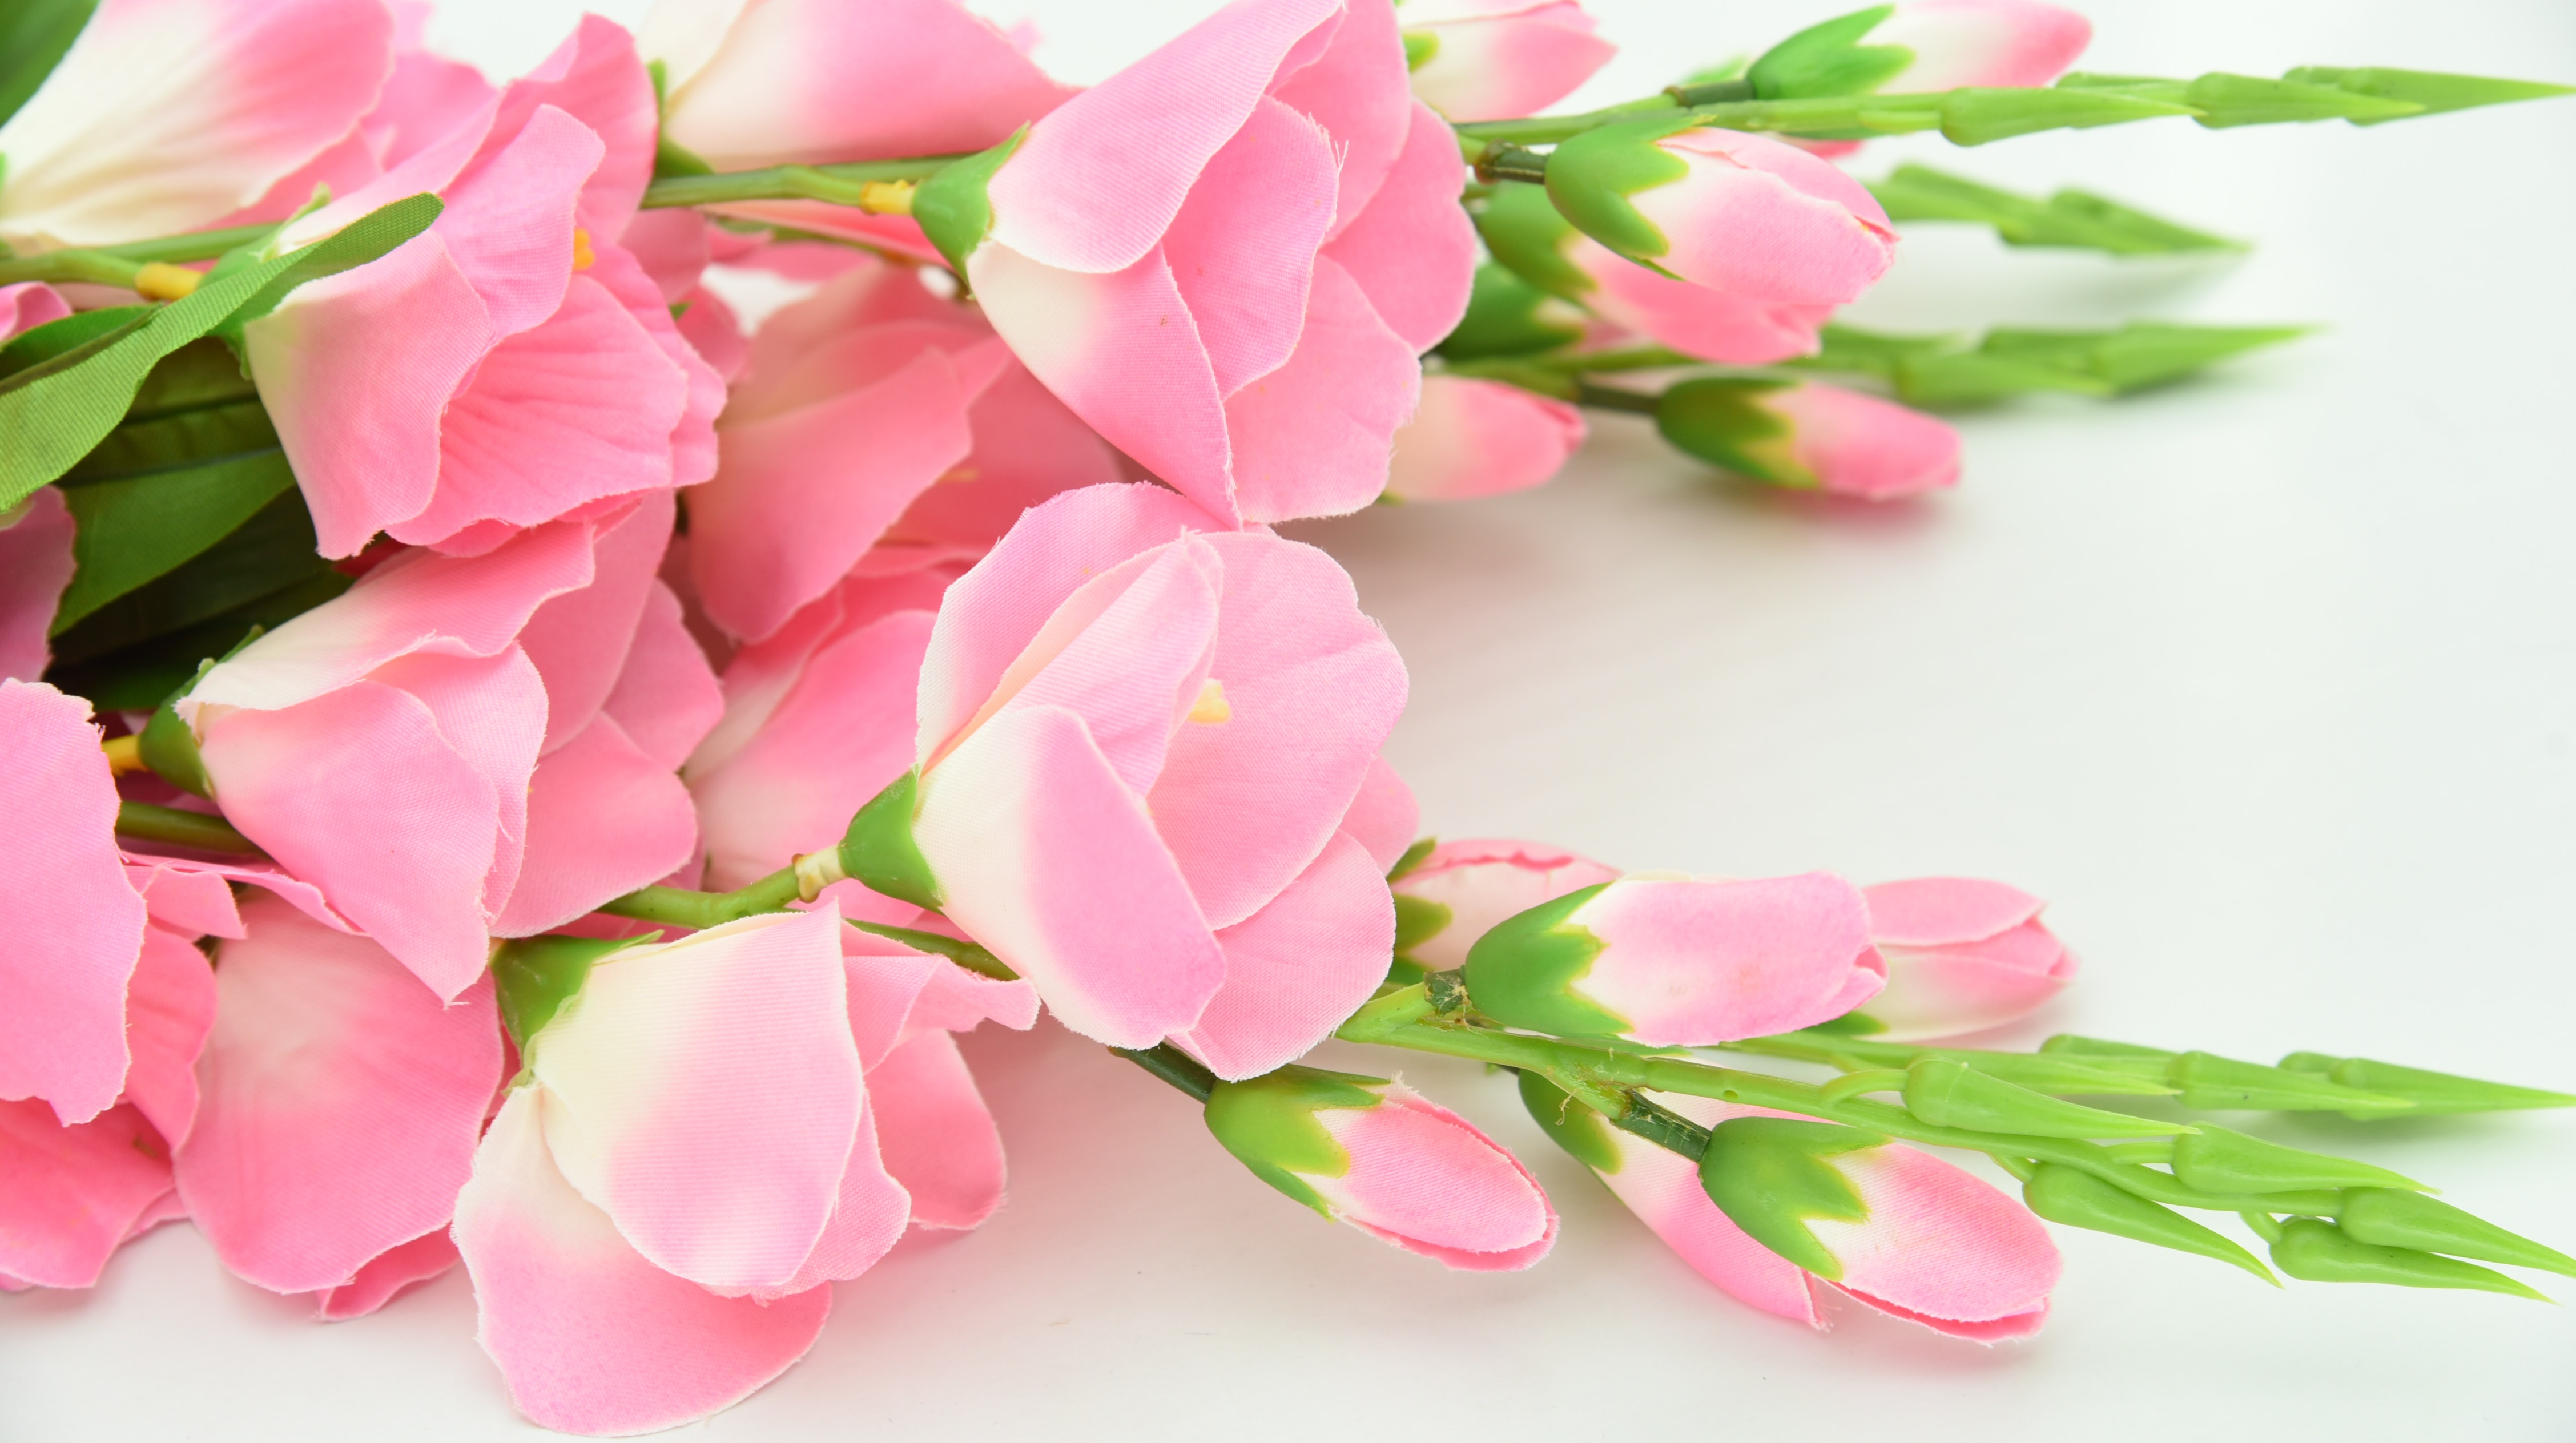 Shallow focus photography of pink flowers free stock photo free download izmirmasajfo